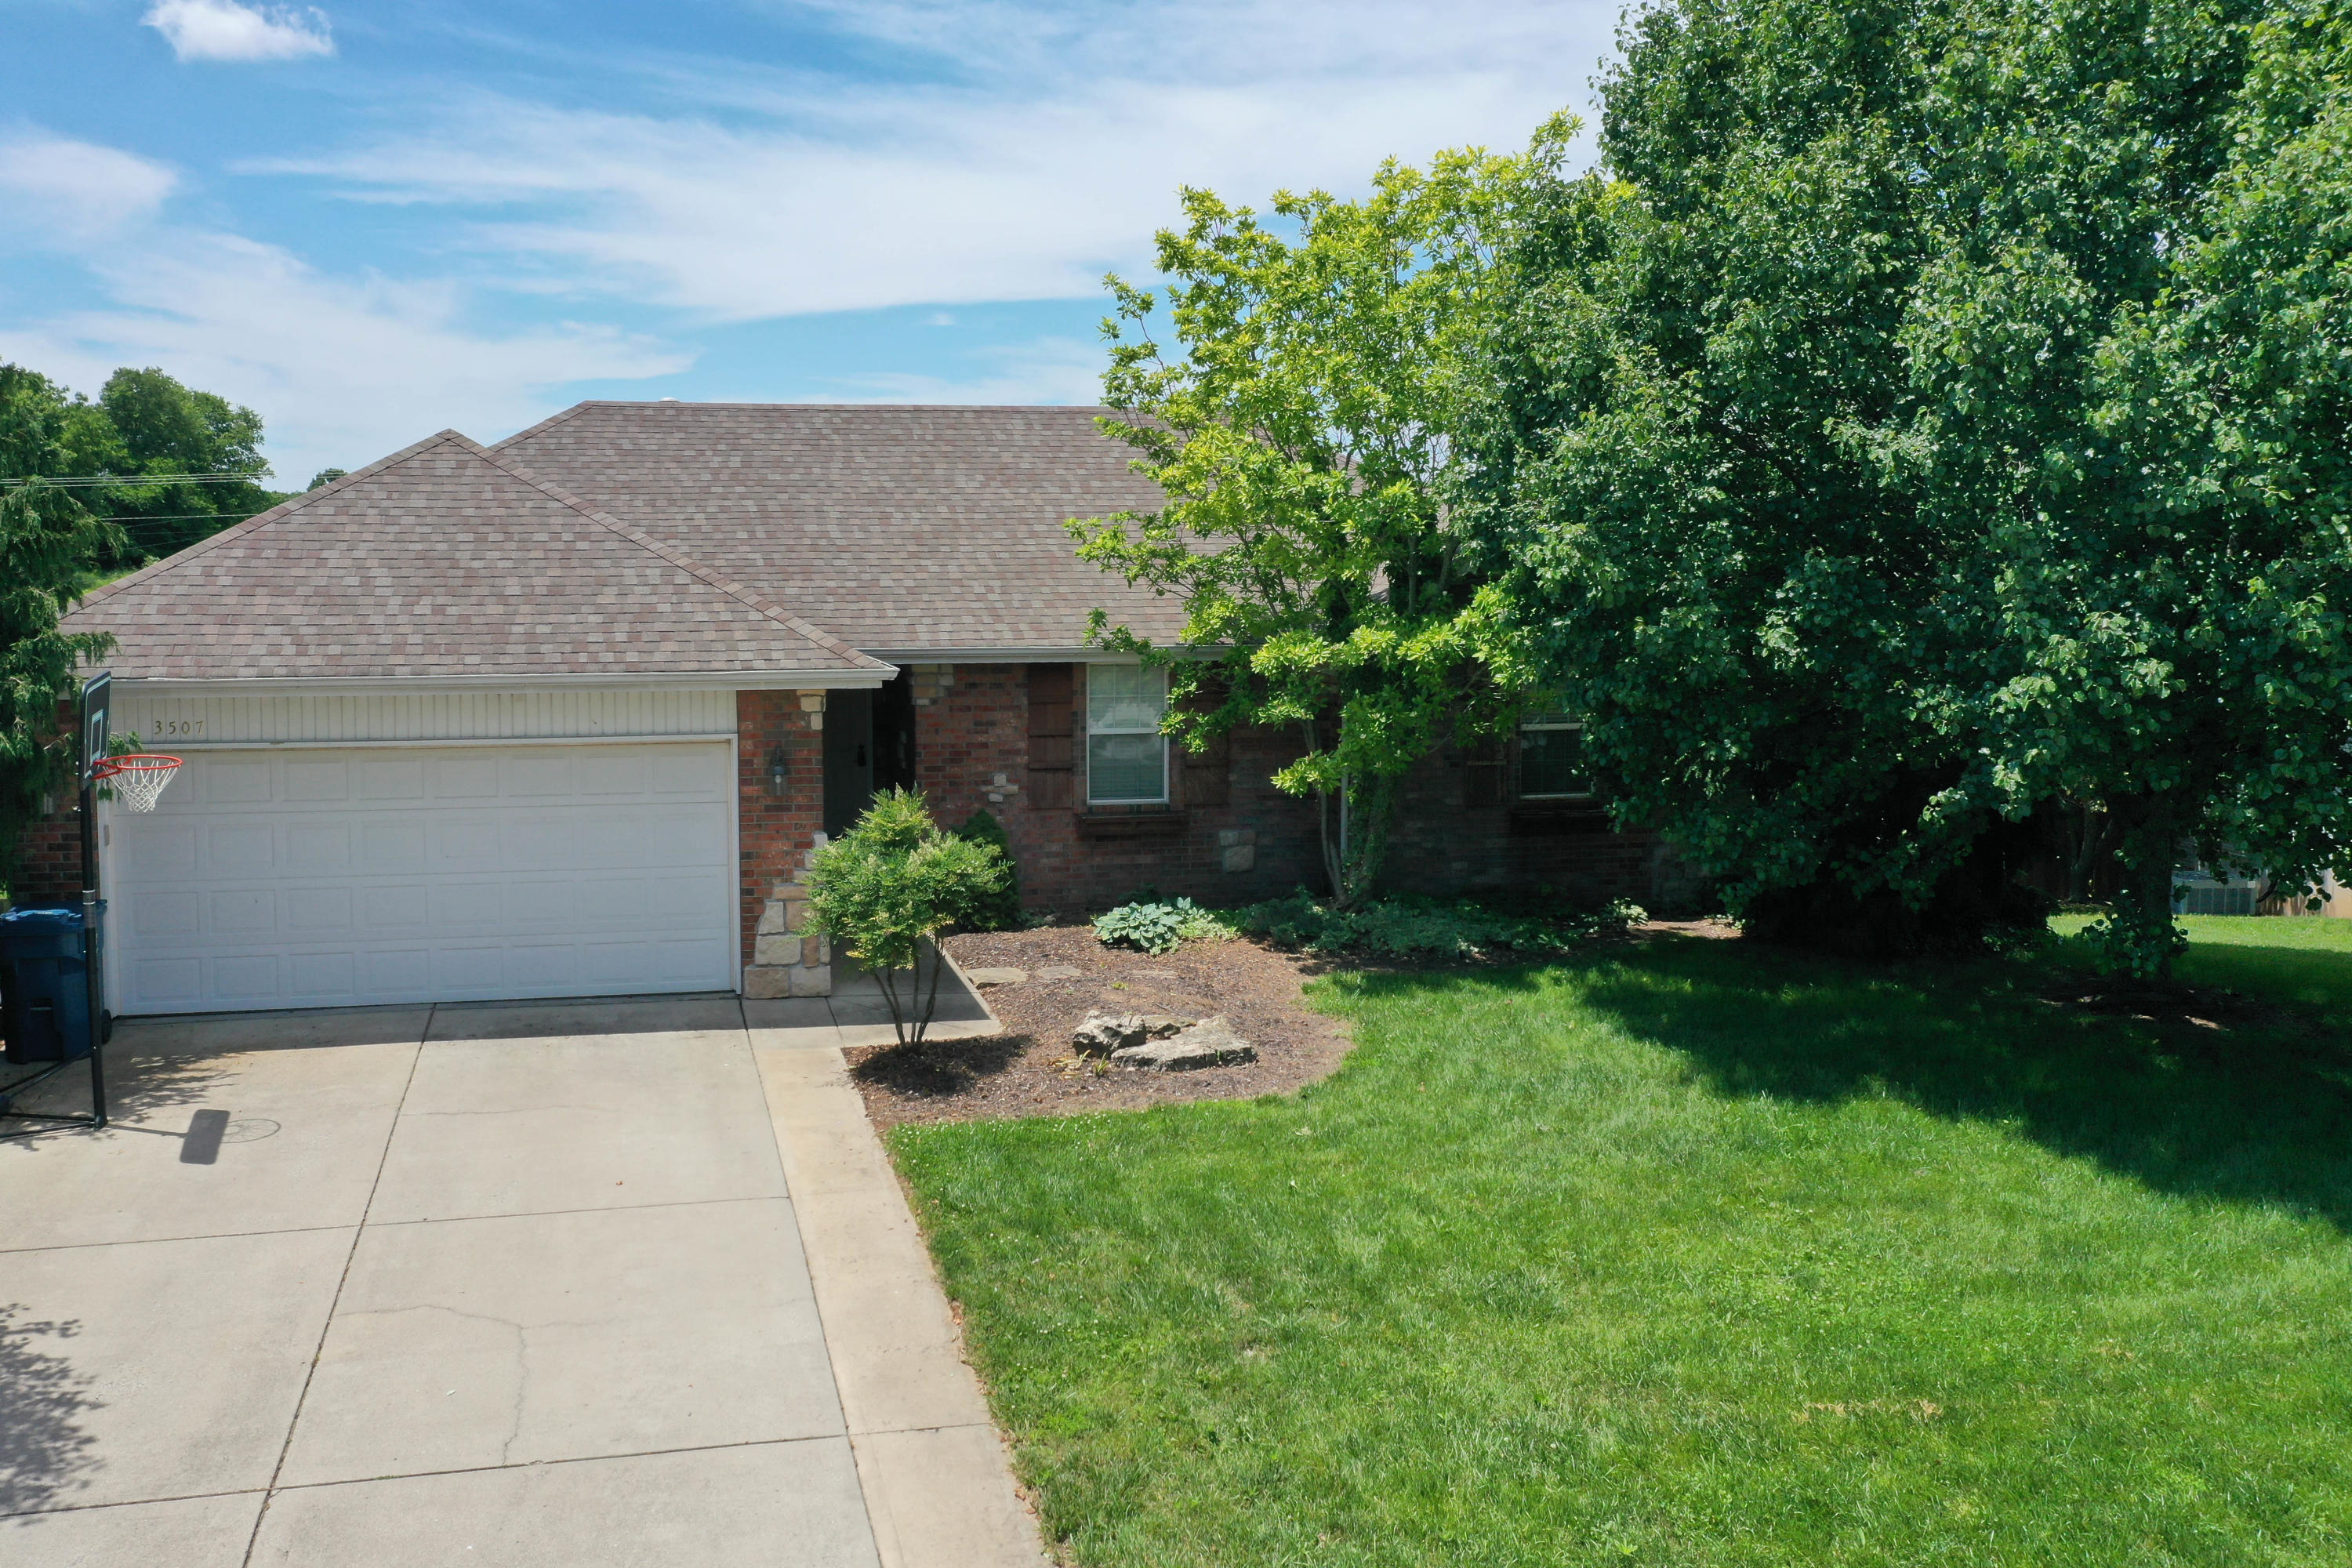 3507 North 31st Street Ozark, MO 65721